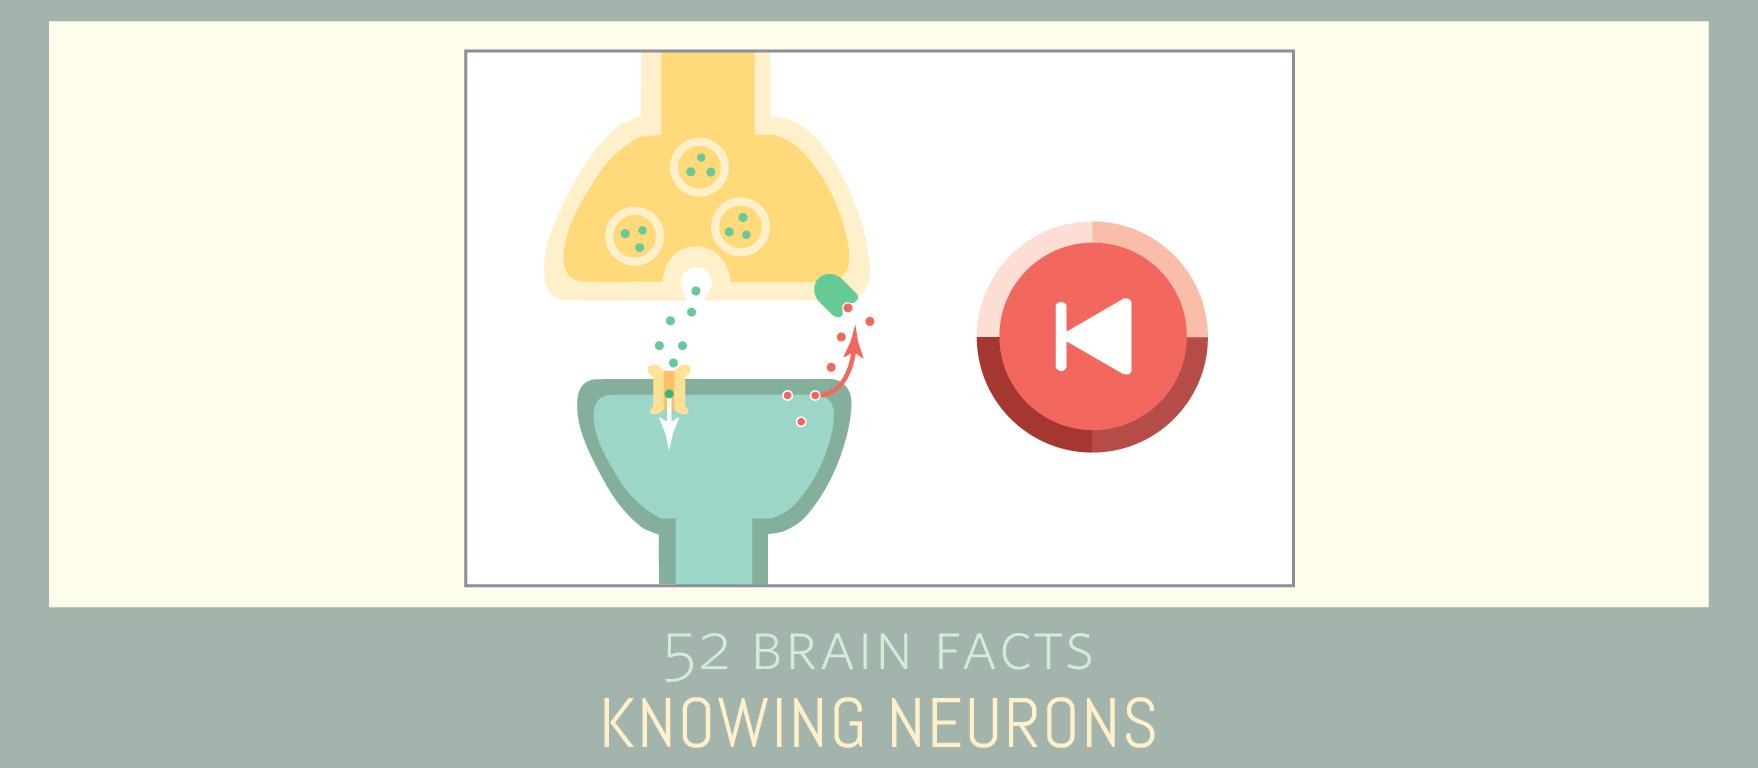 Myth or fact? Some neurotransmitters travel backwards across the synapse.